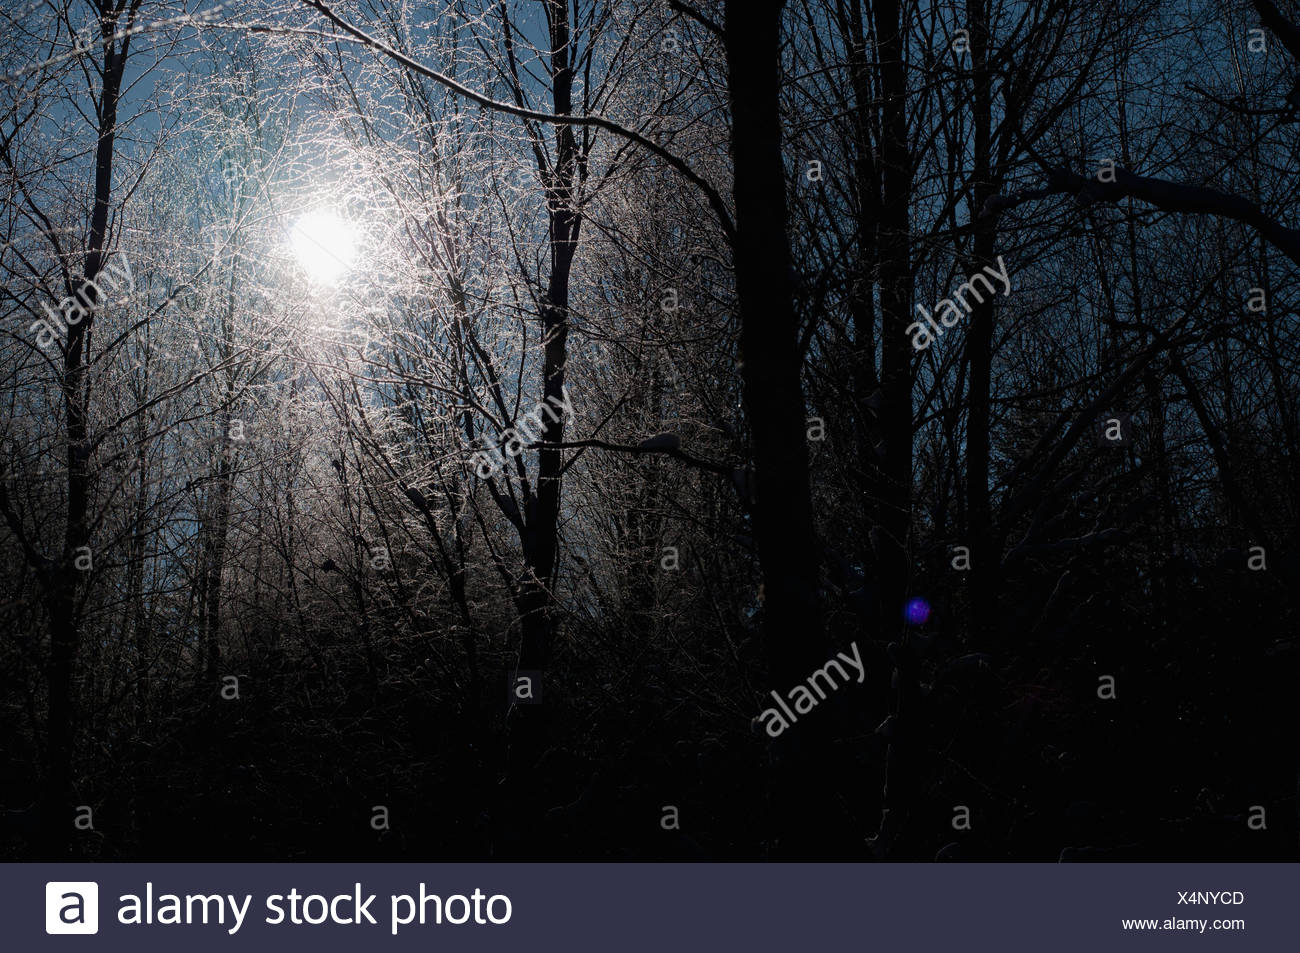 Silhouette of bare trees against sun - Stock Image